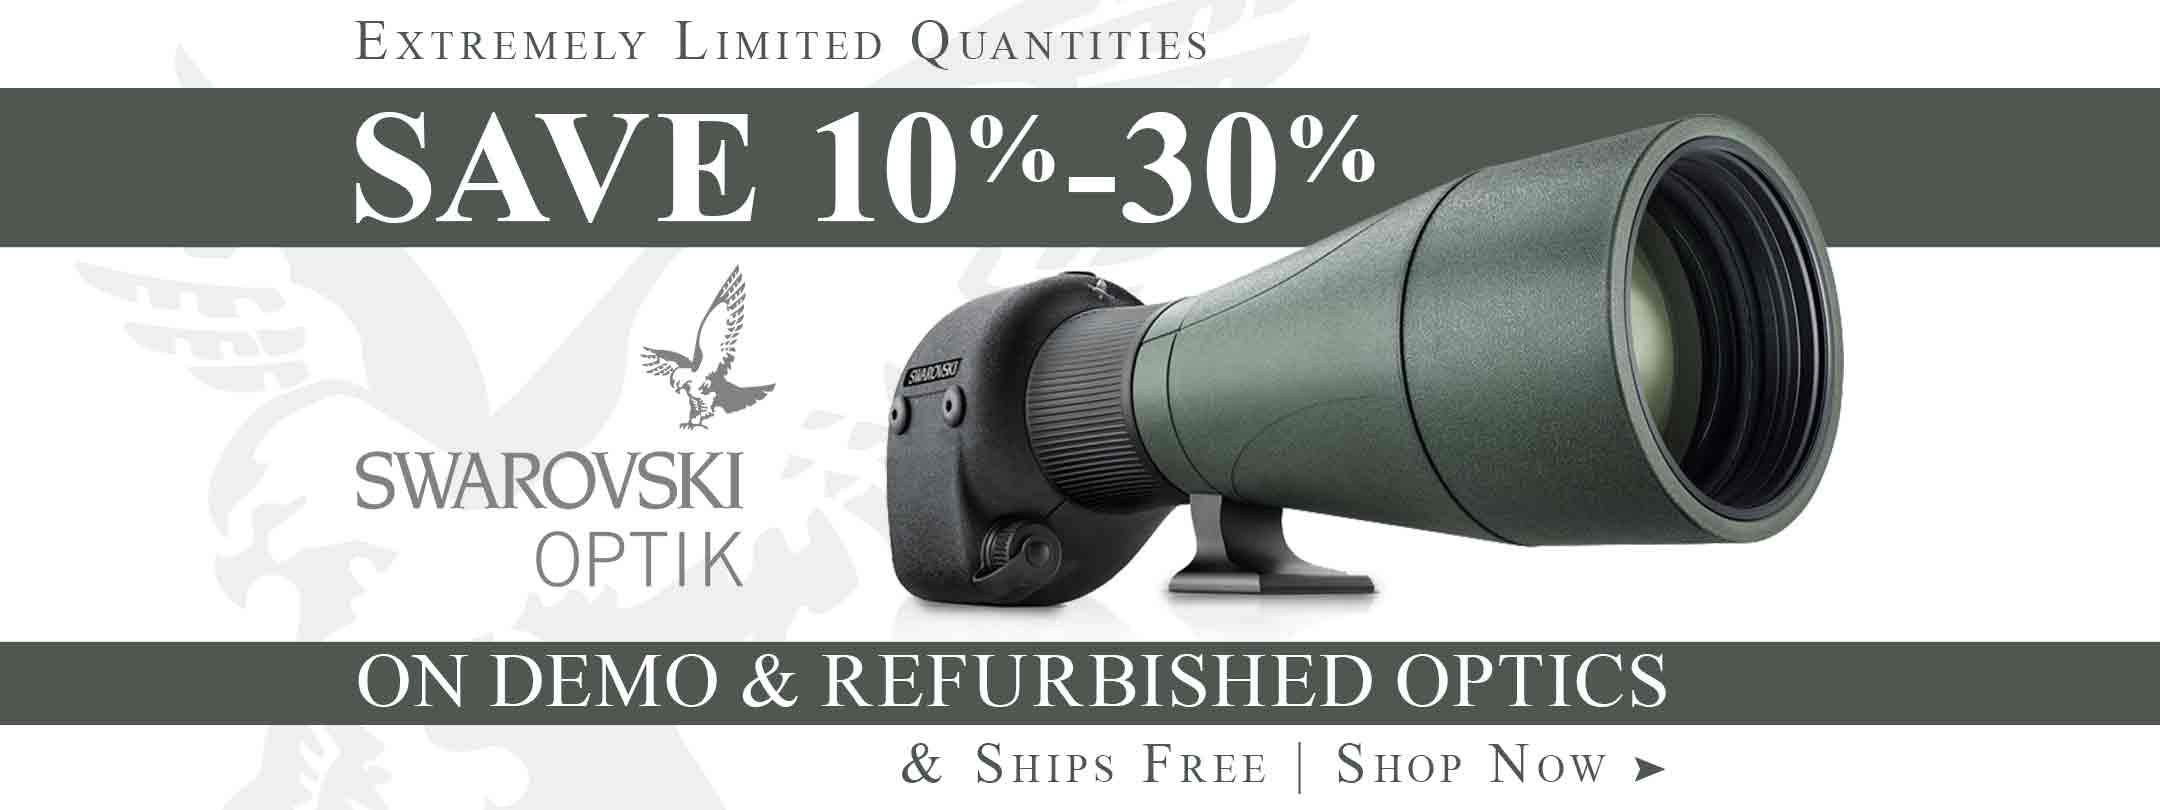 Save on Swarovski Demo & Refurbished Optics